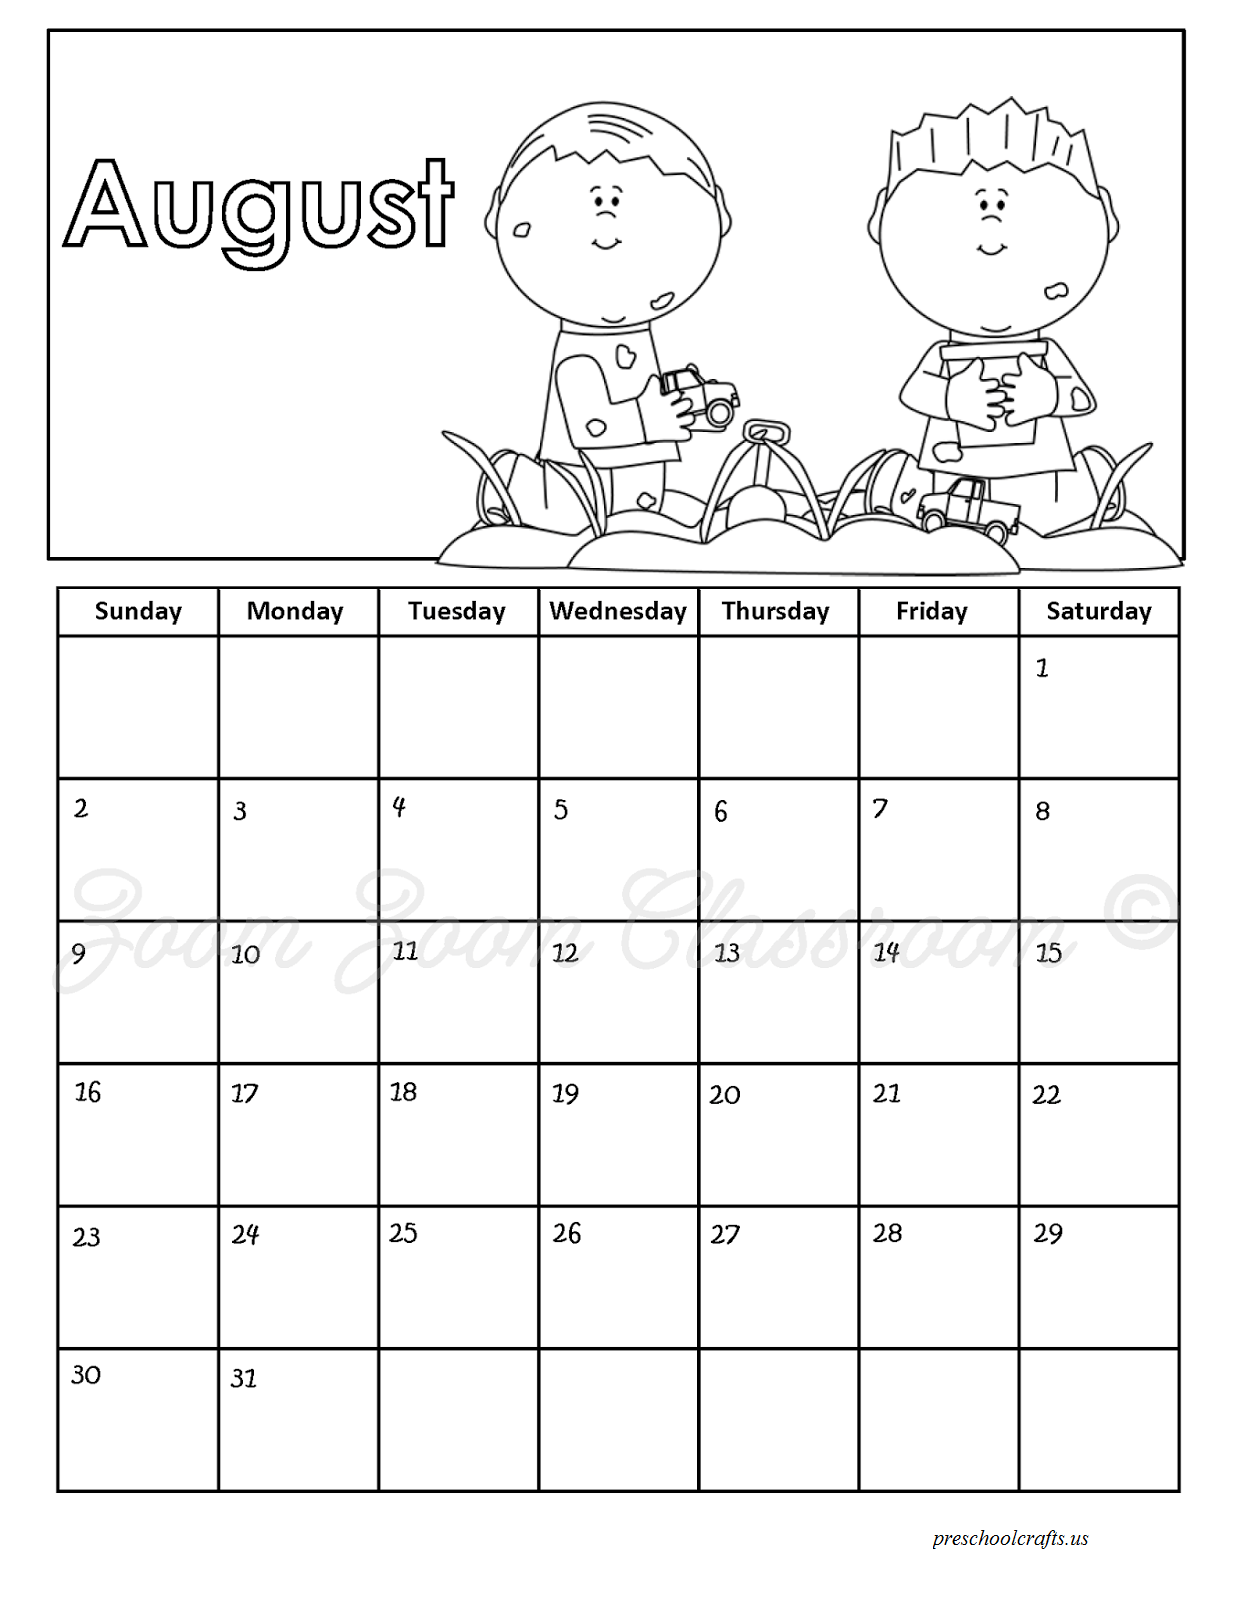 August Calendar Coloring Pages